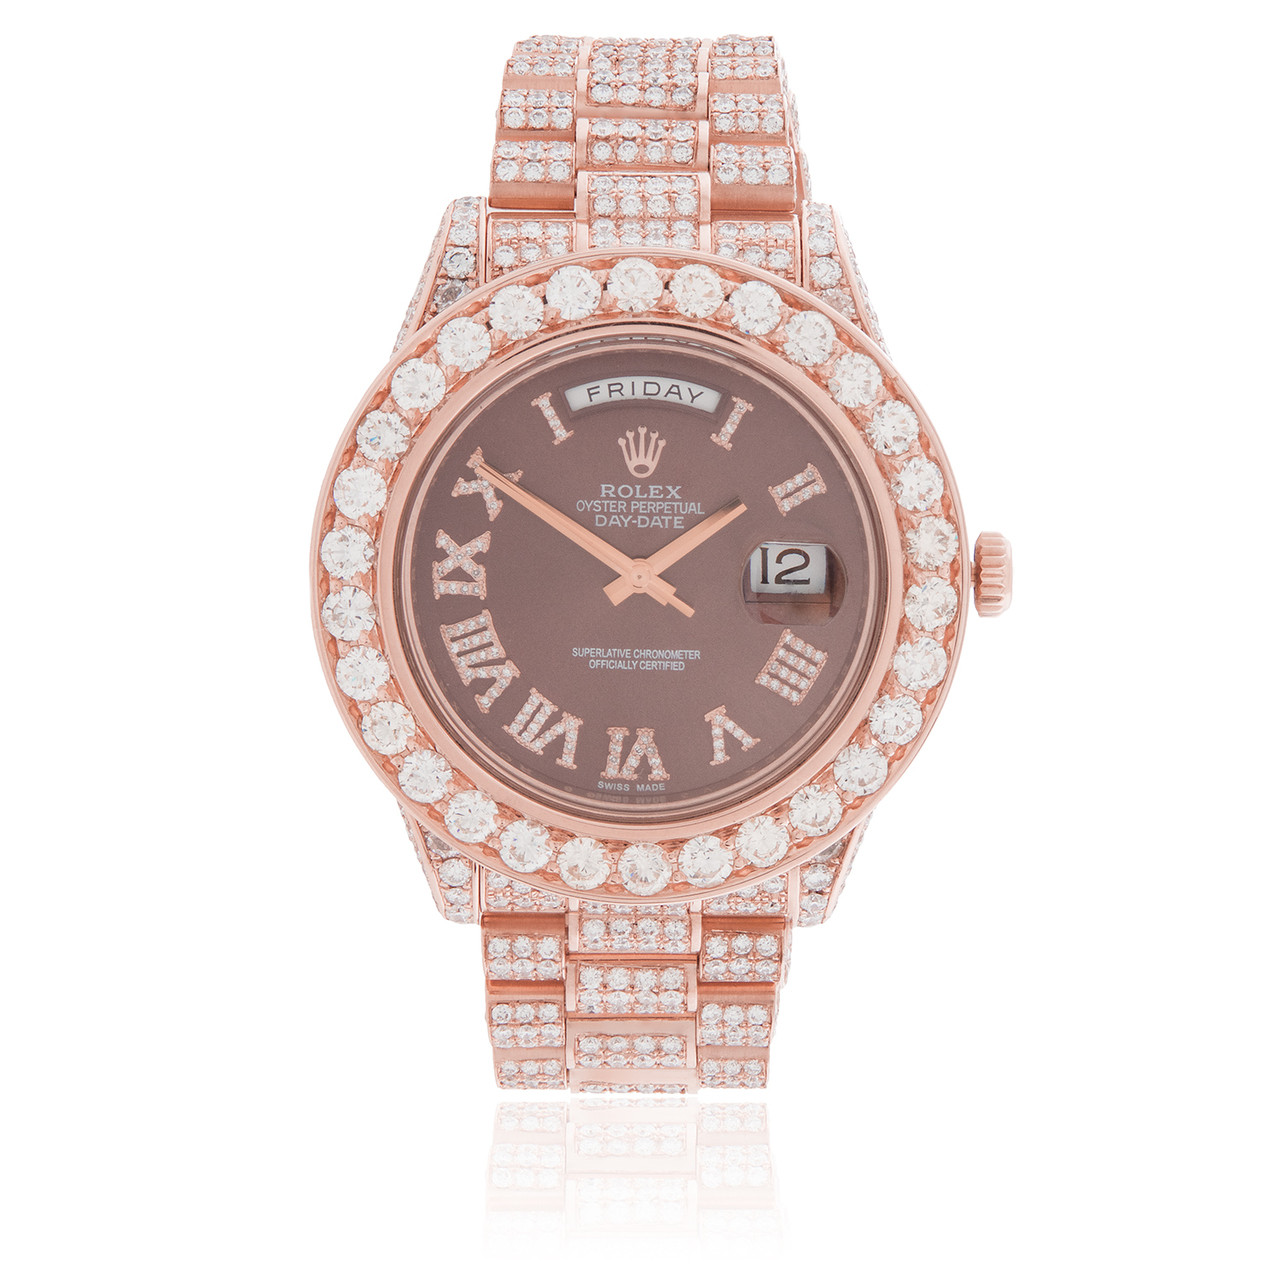 Rolex Day Date 18k Rose Gold President 21 5ct Diamond